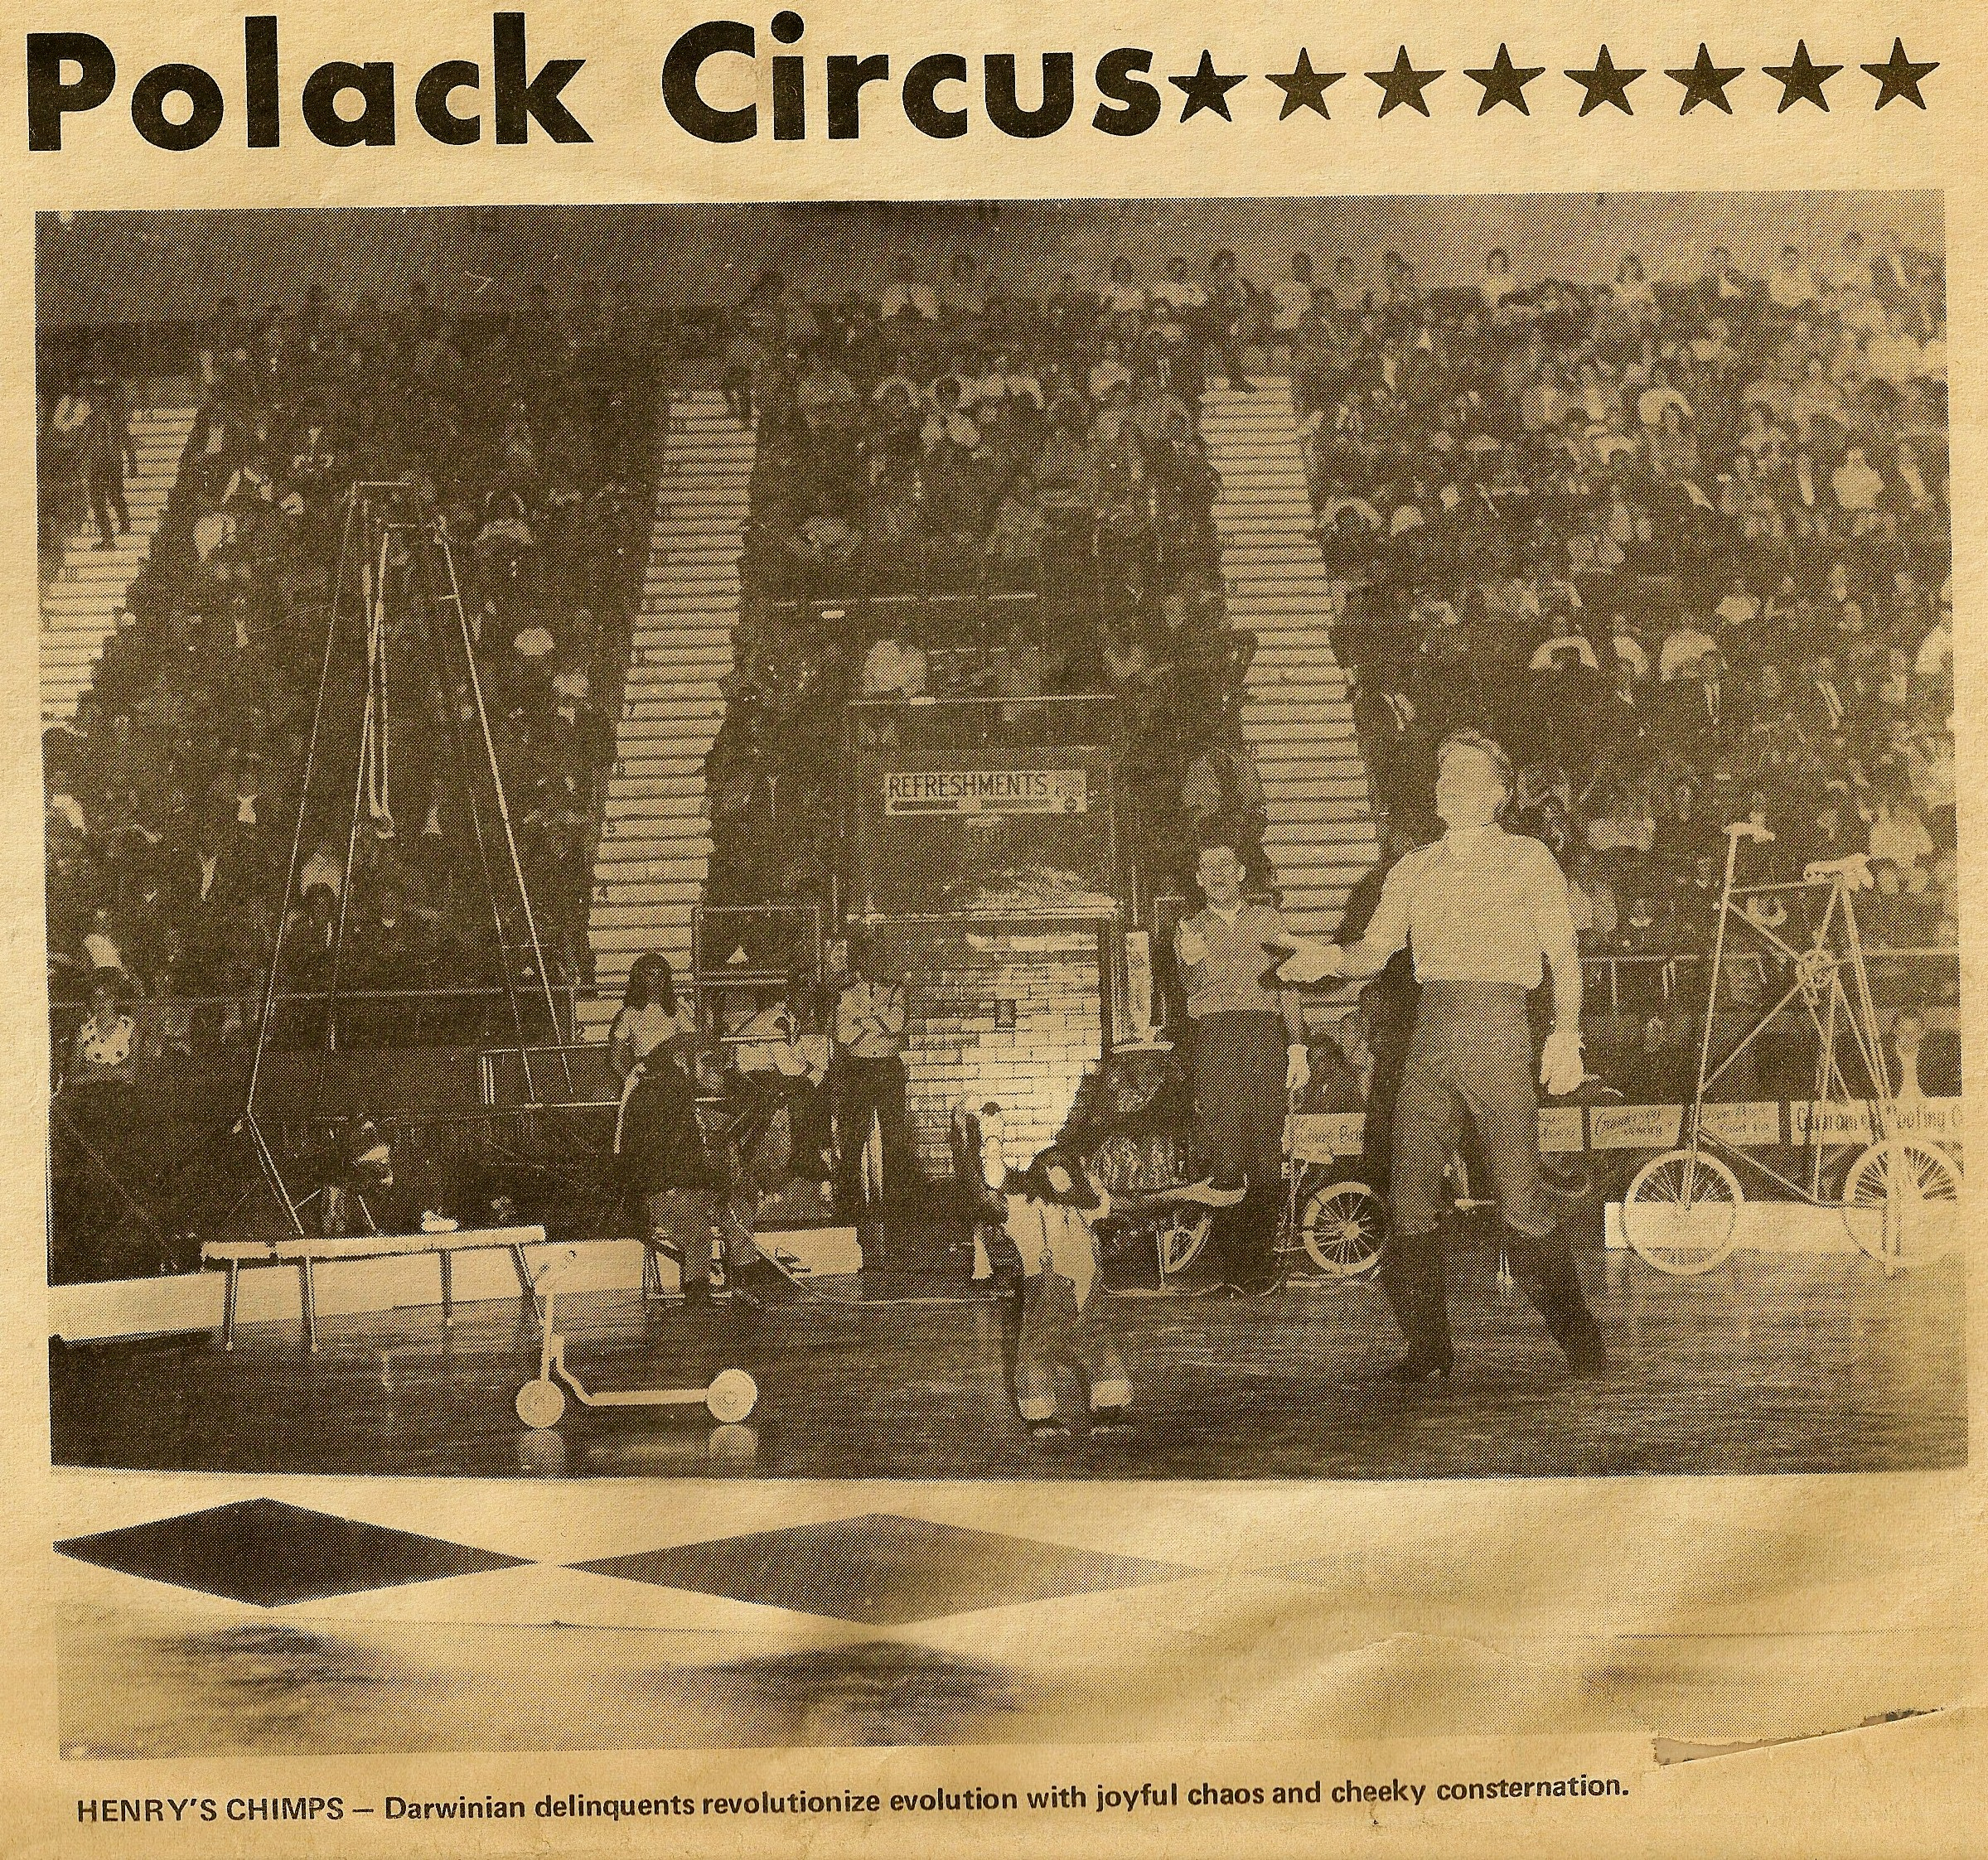 Henrys Chimps 1968 Polacks